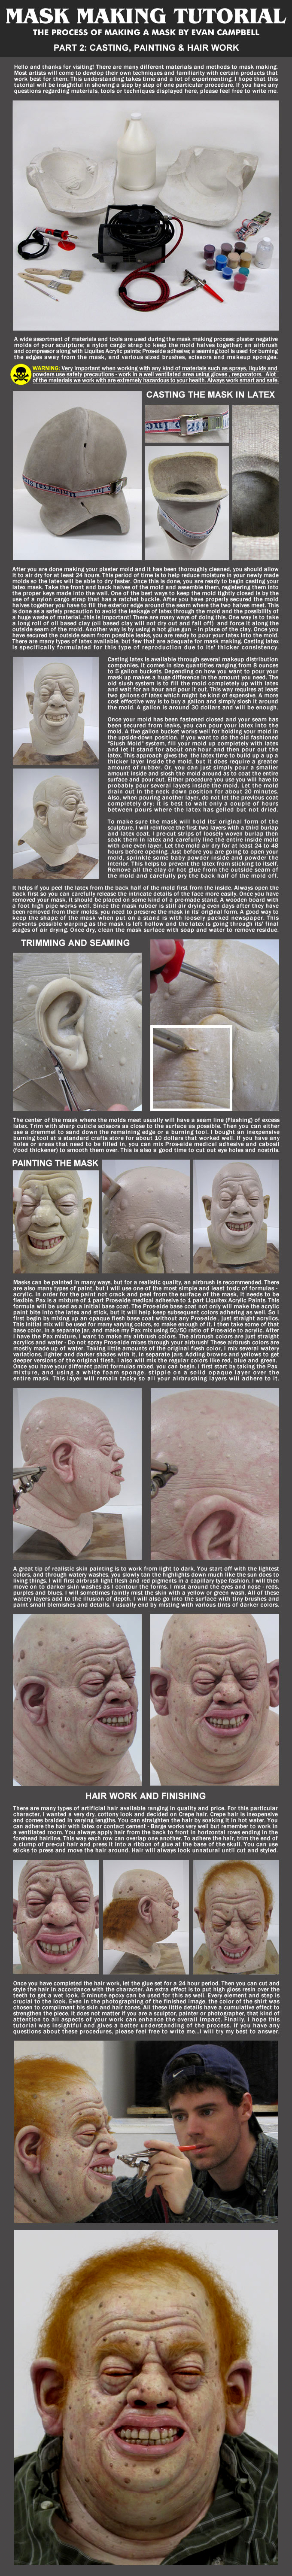 Mask Making Tutorial: Part 2 by EvanCampbell